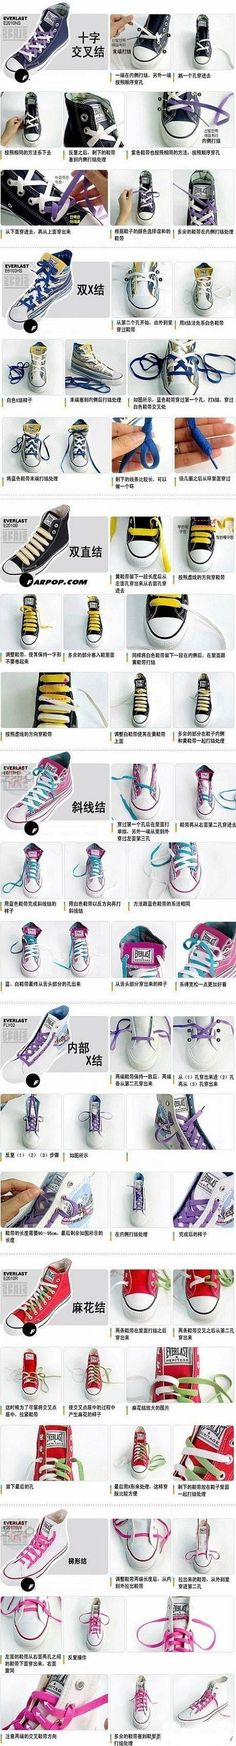 different ways to lace up your converse